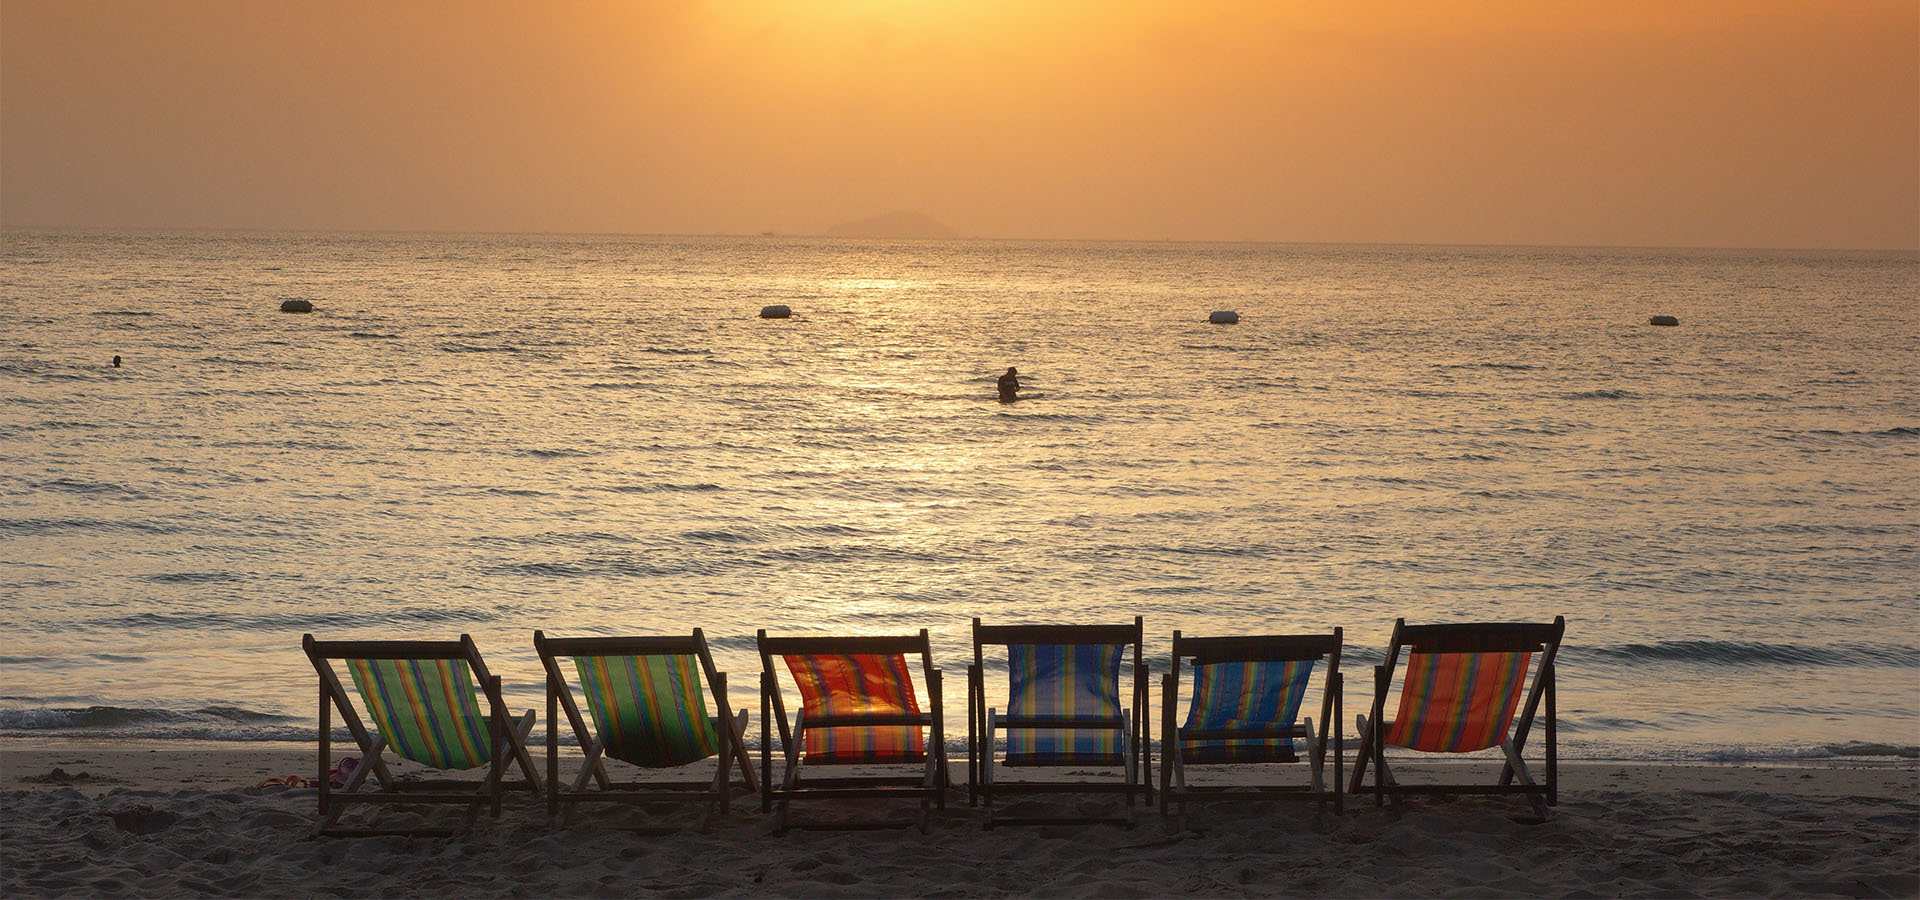 Empty deck chairs on the sand at the beach with the sun setting in the background.